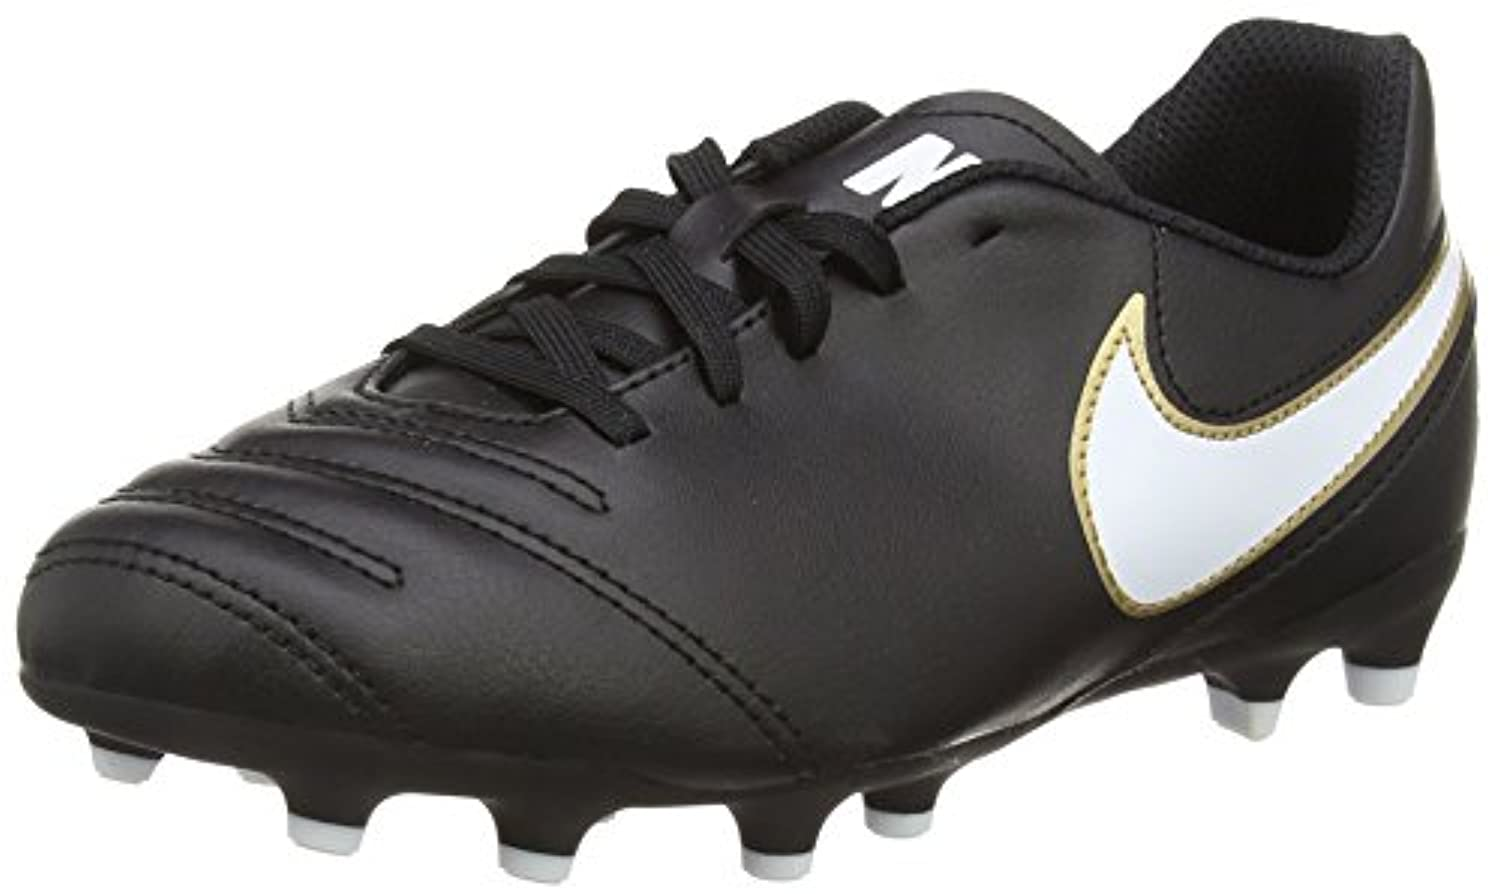 Nike Unisex Kids' Tiempo Rio III FG Football Training Shoes, Black (Black/White-Metallic Gold 010), 1 UK